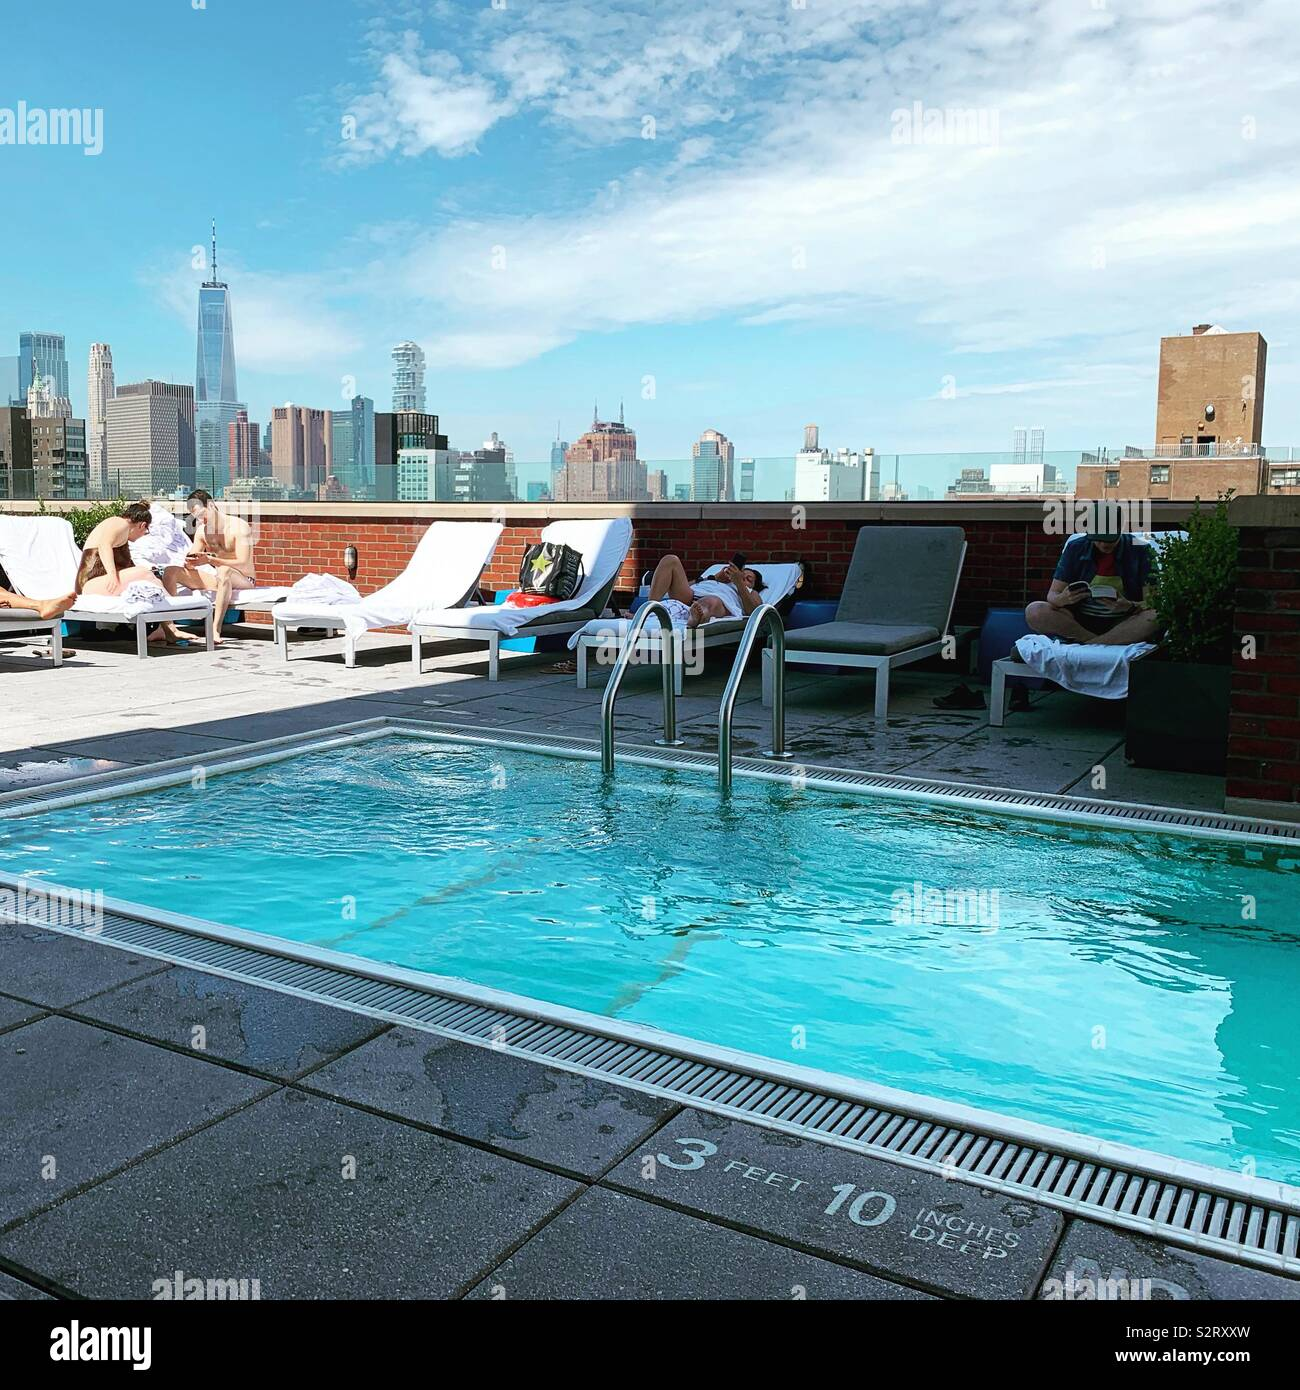 The pool at the Hotel Indigo Lower East Side, New York City Stock